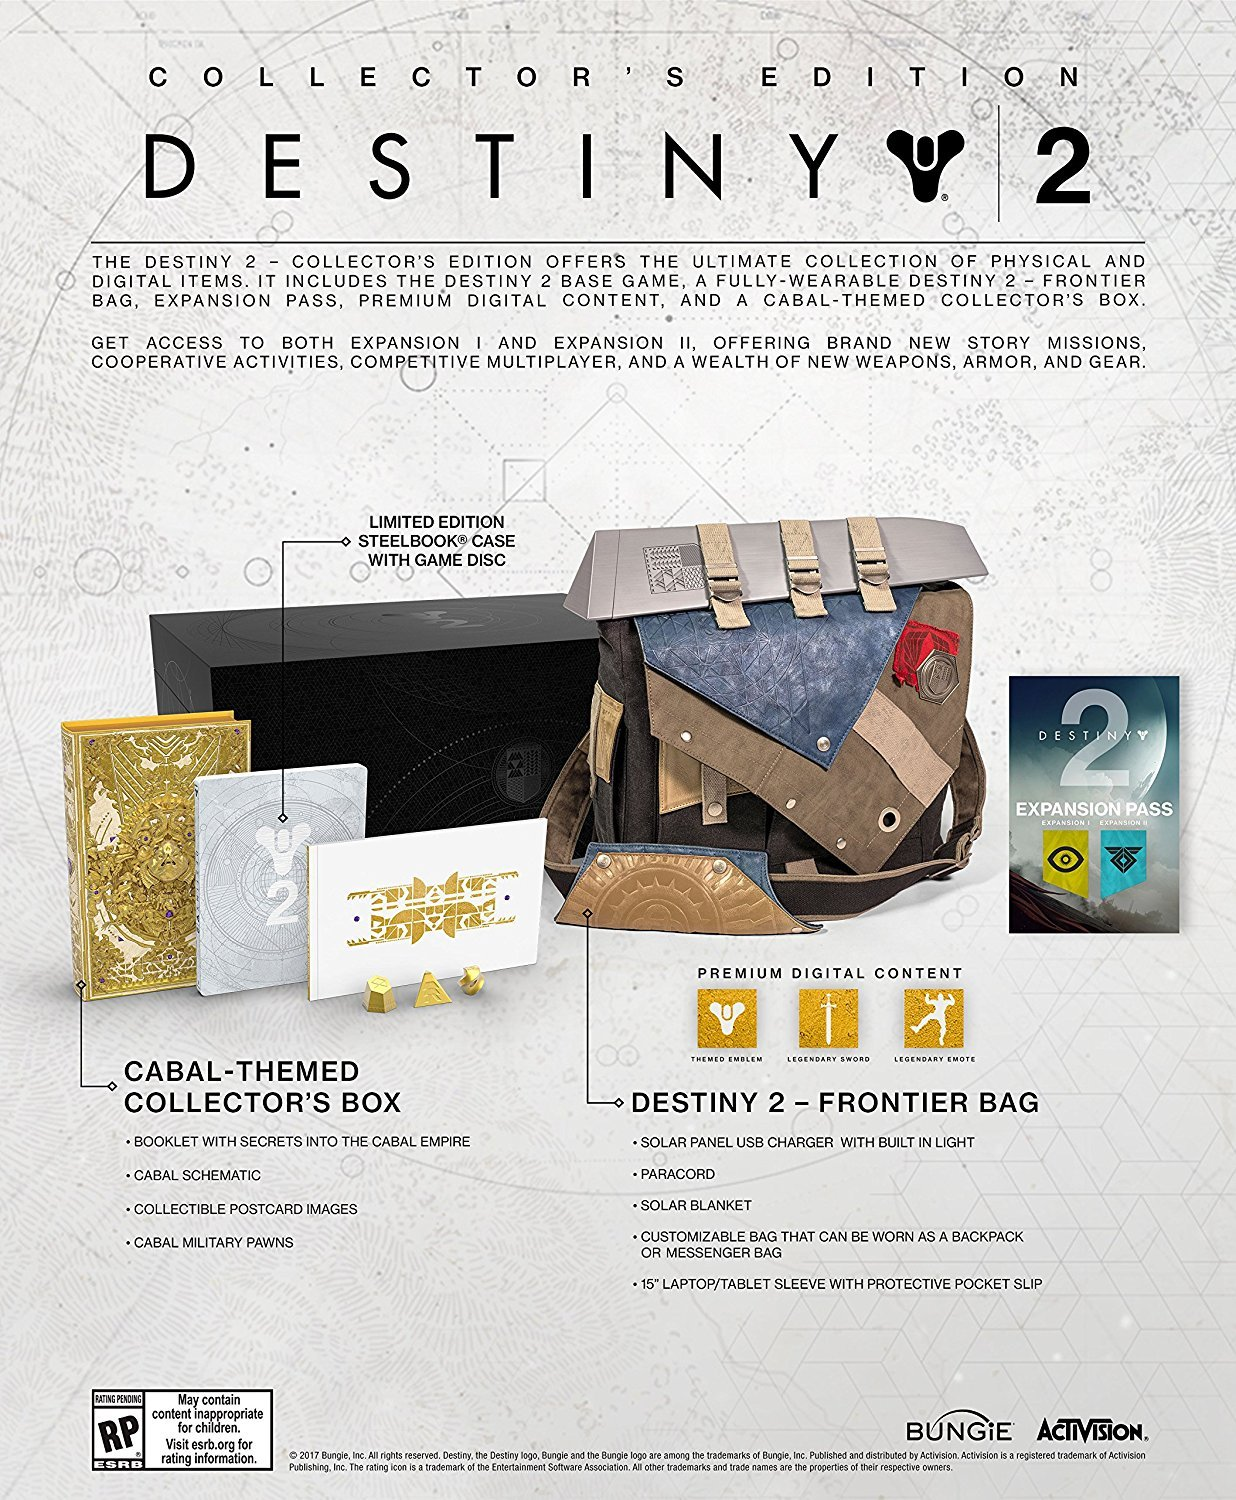 Destiny 2 Collector's Edition XBOX ONE /w Frontier Bag, Expansion Pass Bungie